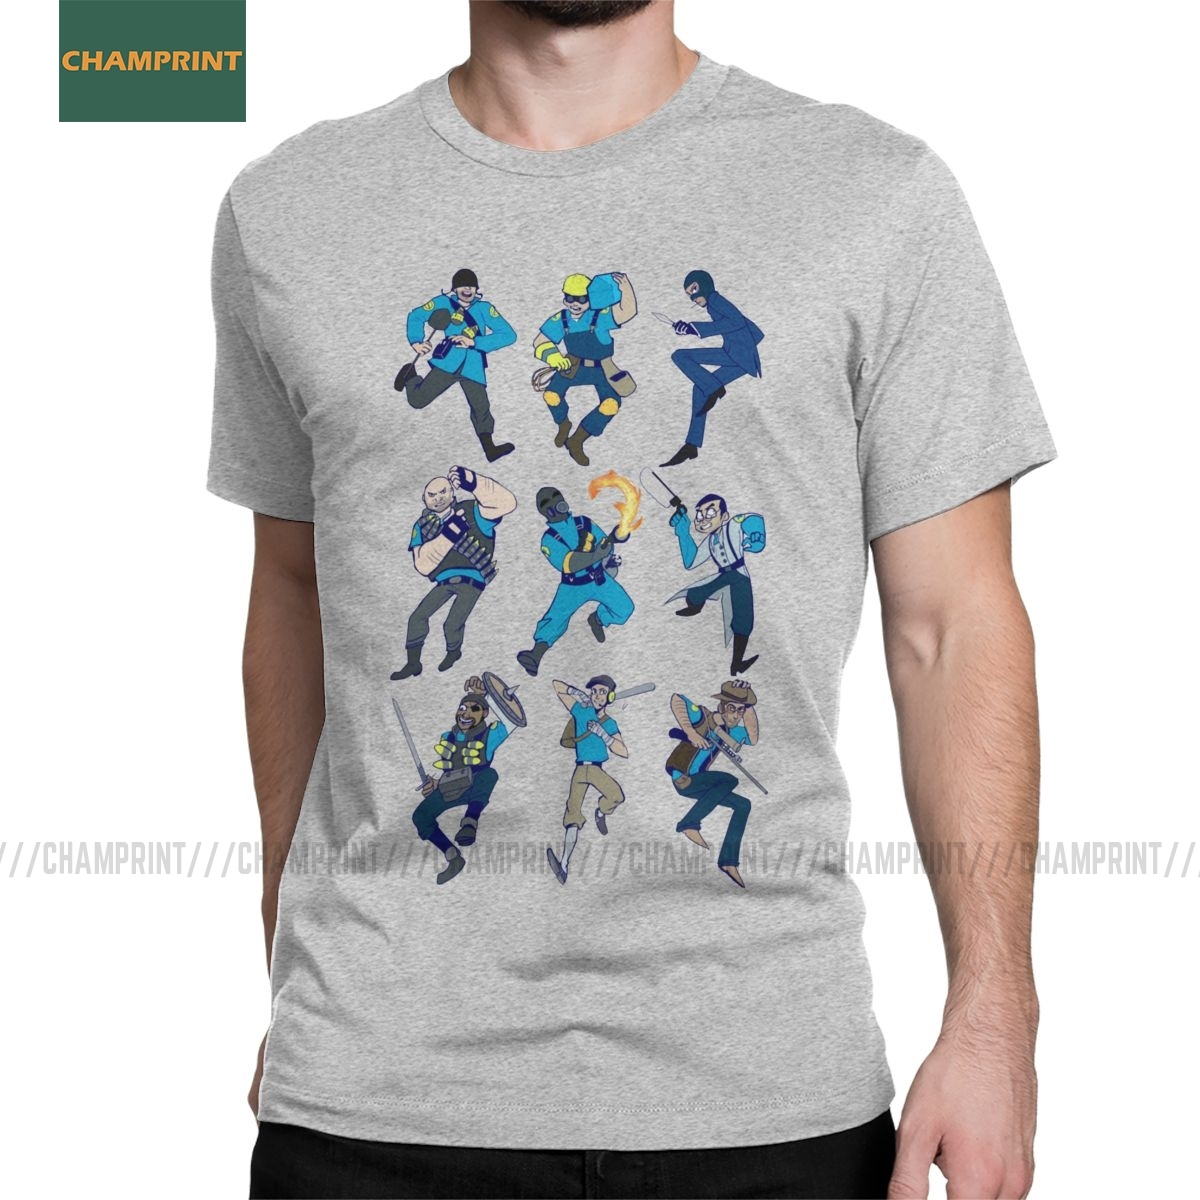 Men's <font><b>Team</b></font> <font><b>Fortress</b></font> <font><b>2</b></font> T <font><b>Shirts</b></font> TF2 Engineer Game Soldier Cotton Clothes Crazy Short Sleeve O Neck Tees Classic T-<font><b>Shirts</b></font> image